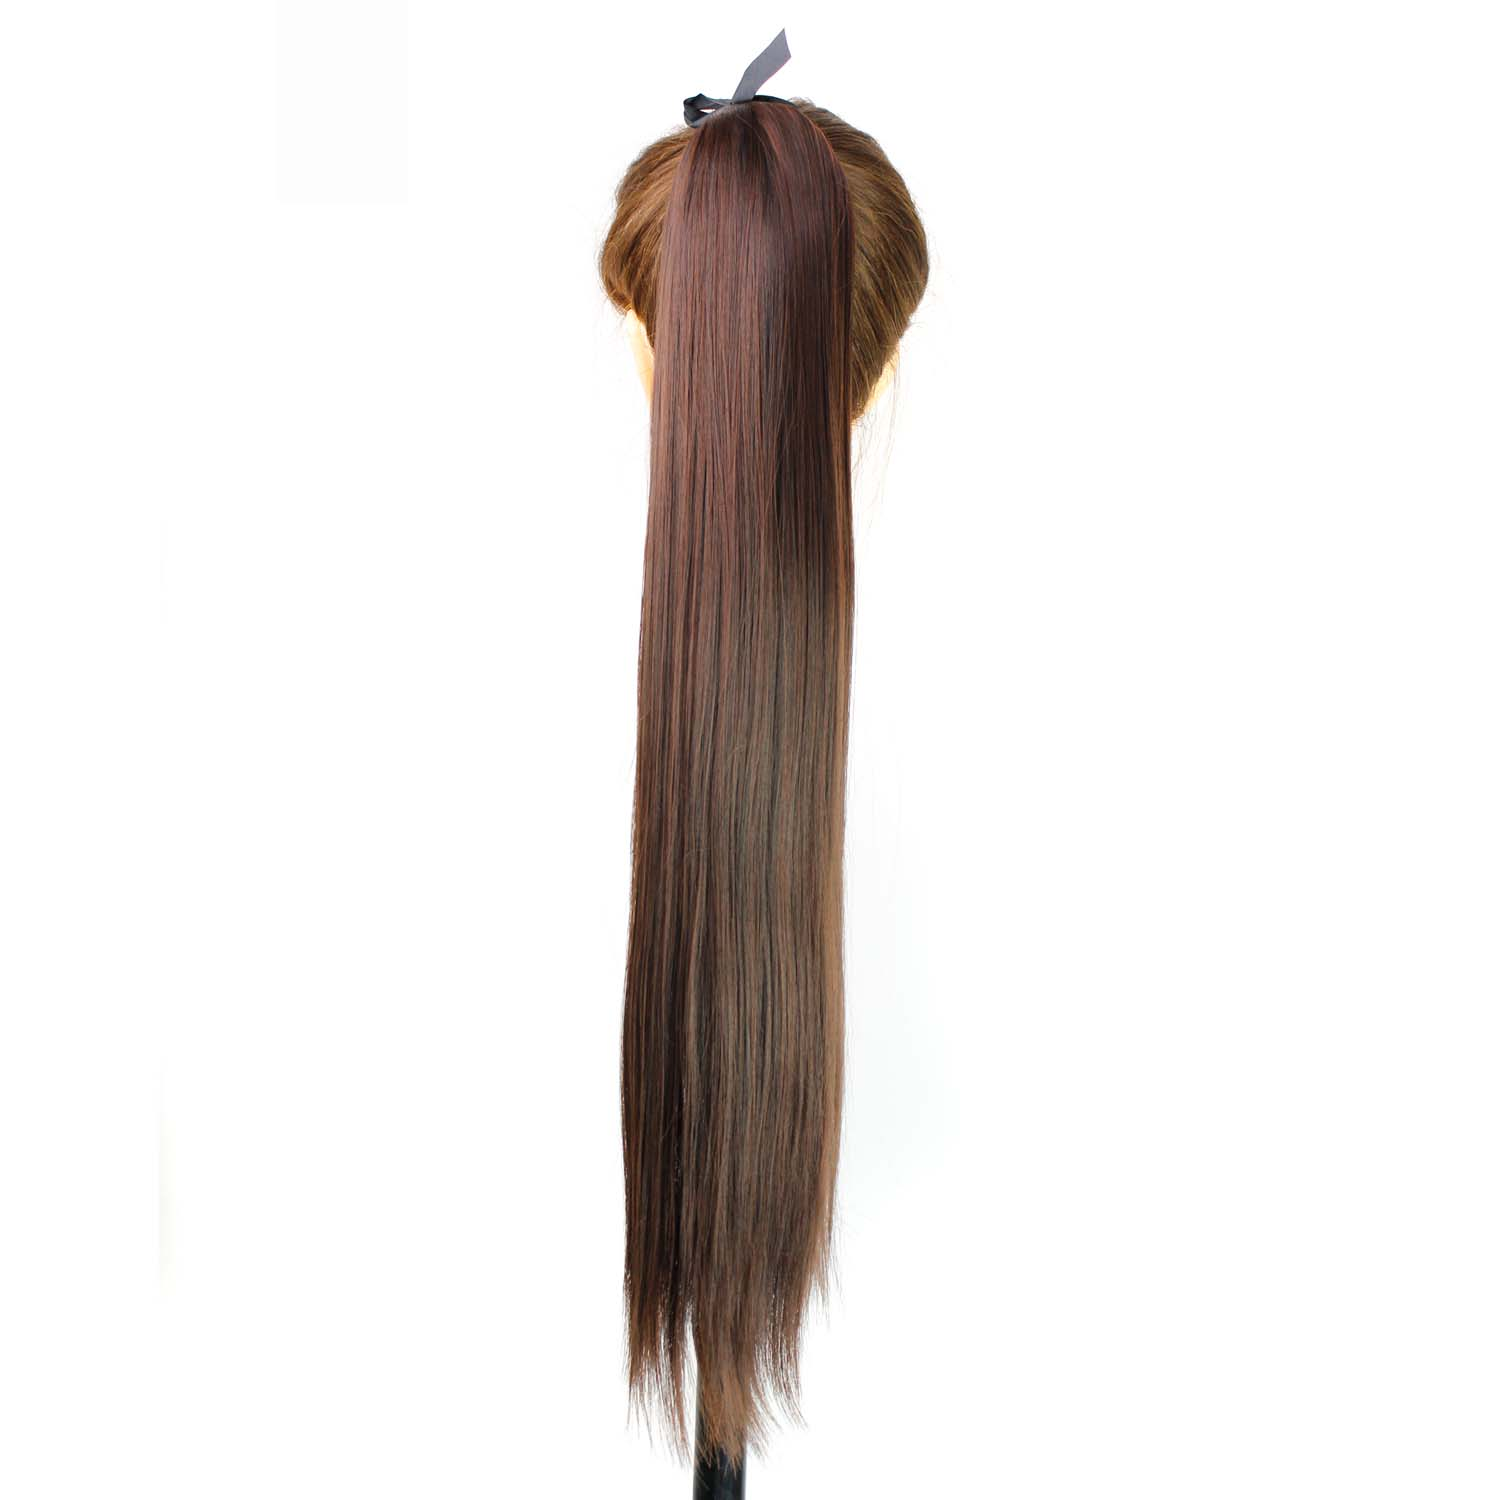 22Long Straight Synthetic Apply Hair Ponytail Clips in Pony Tails Hairpiece Ribbon Ponytails Hair Extensions Fake Hair Piece<br><br>Aliexpress